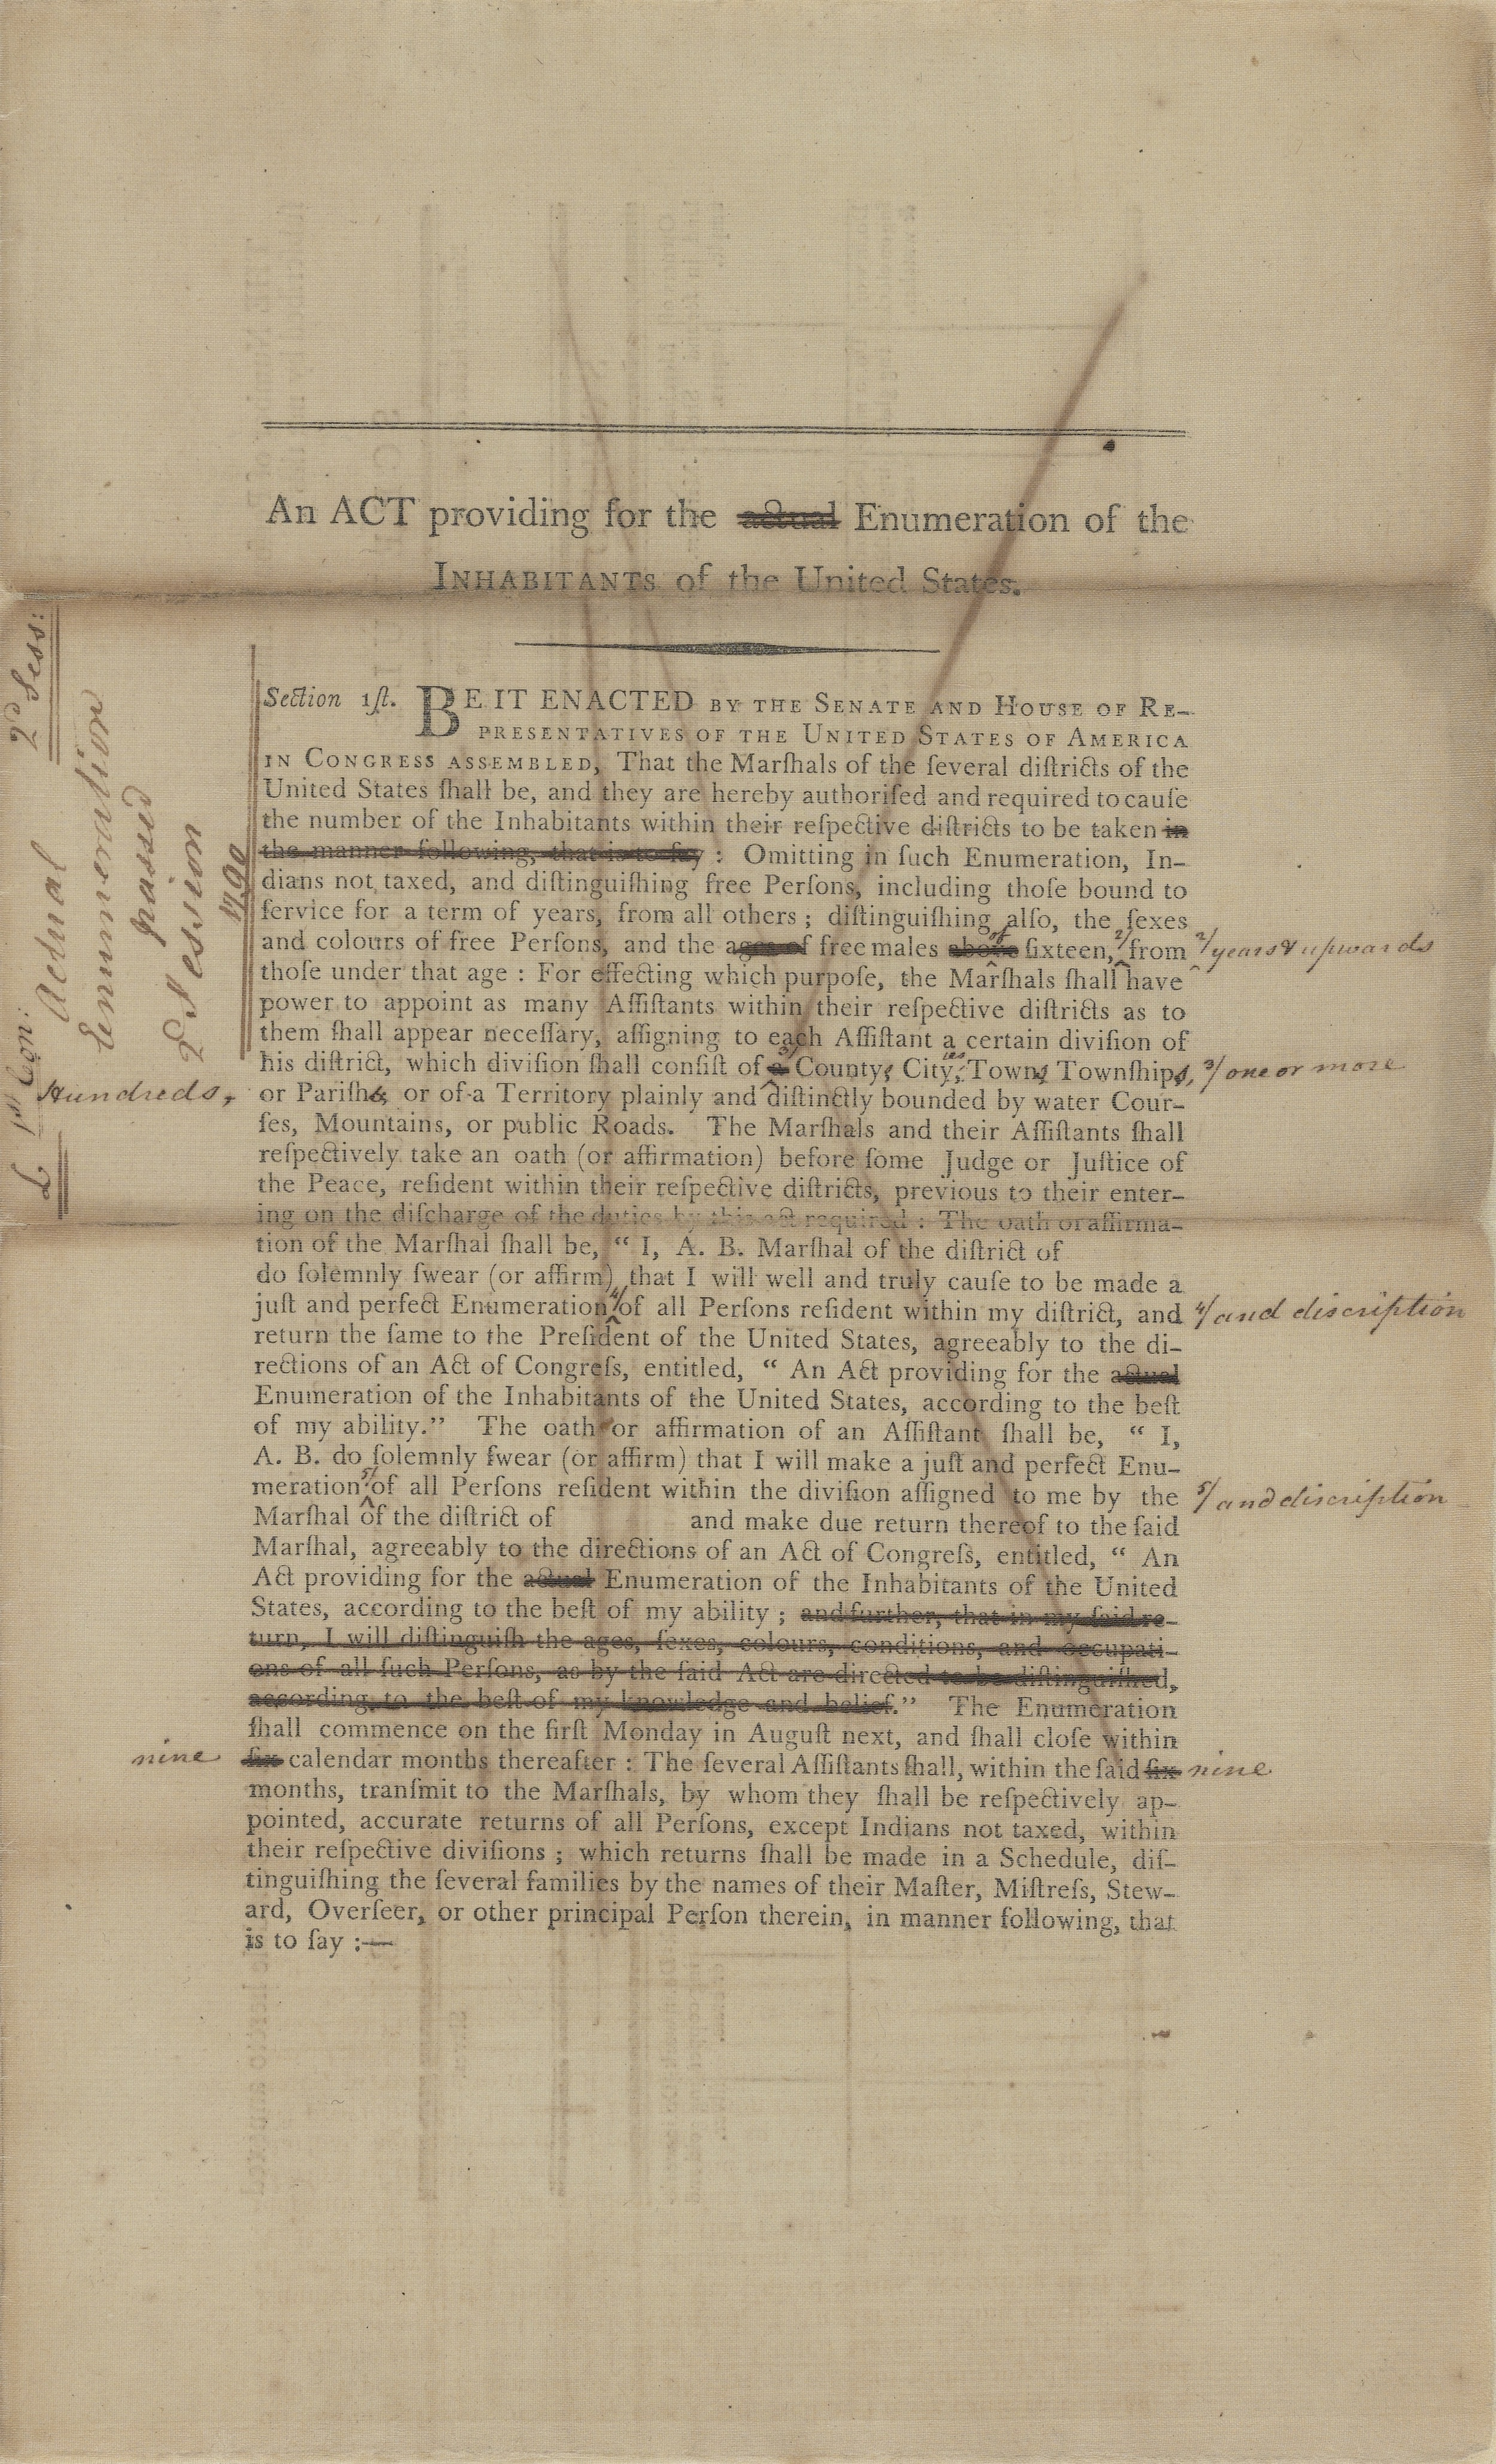 An Act Providing for the Enumeration of the Inhabitants of the United States, March 2, 1790, Records of the U.S. Senate, National Archives